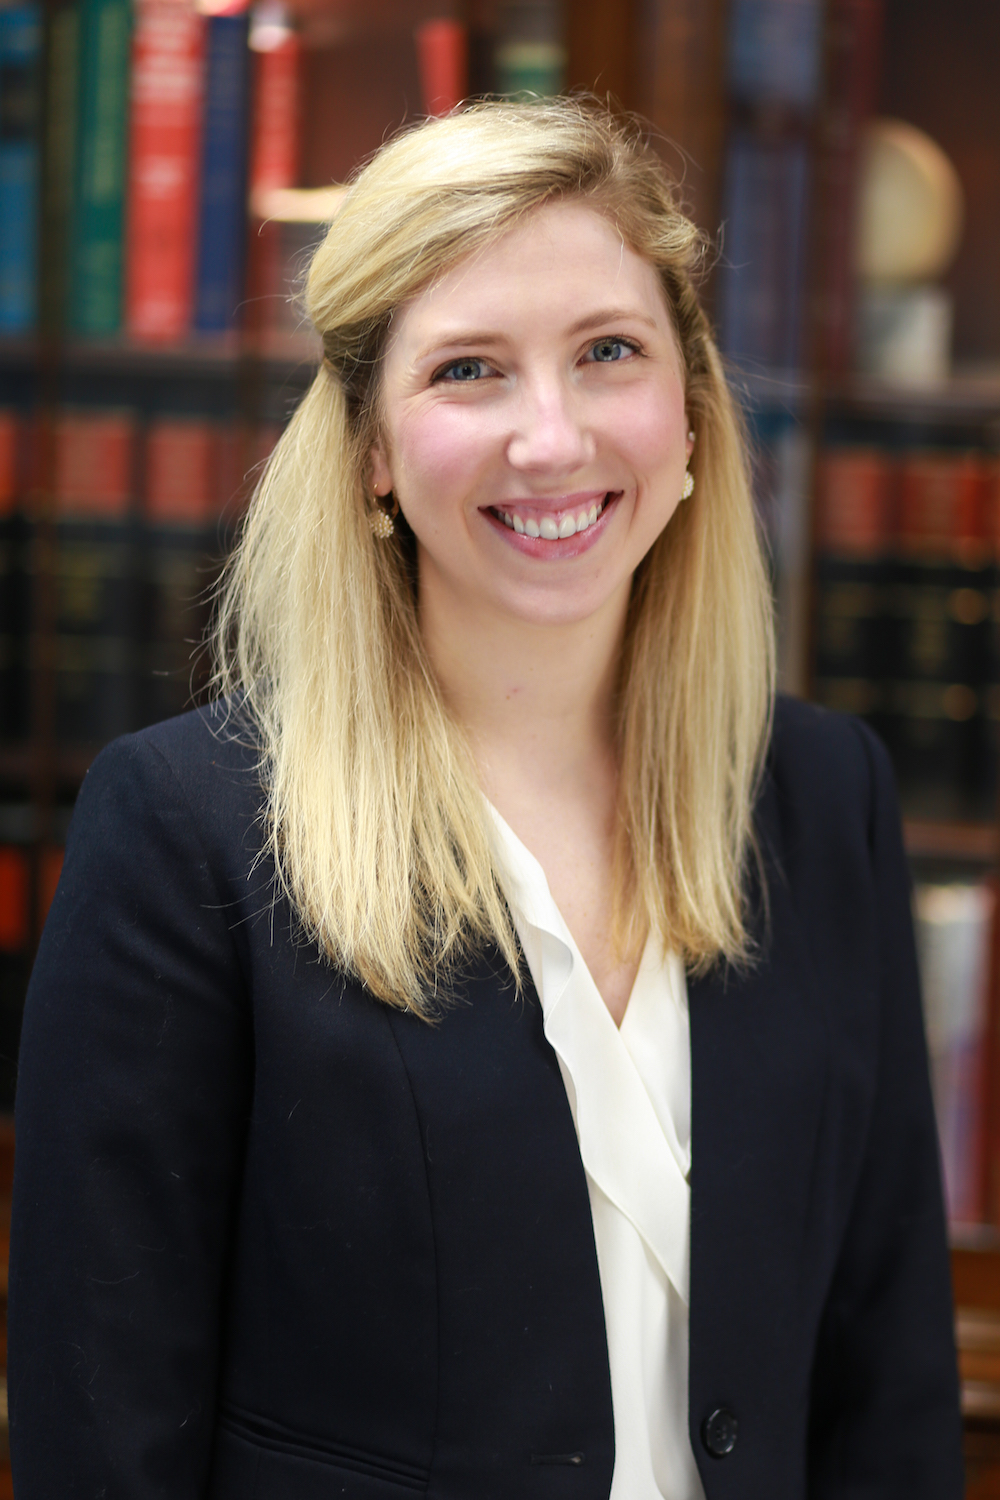 Courtney L. Broussard Attorney Profile